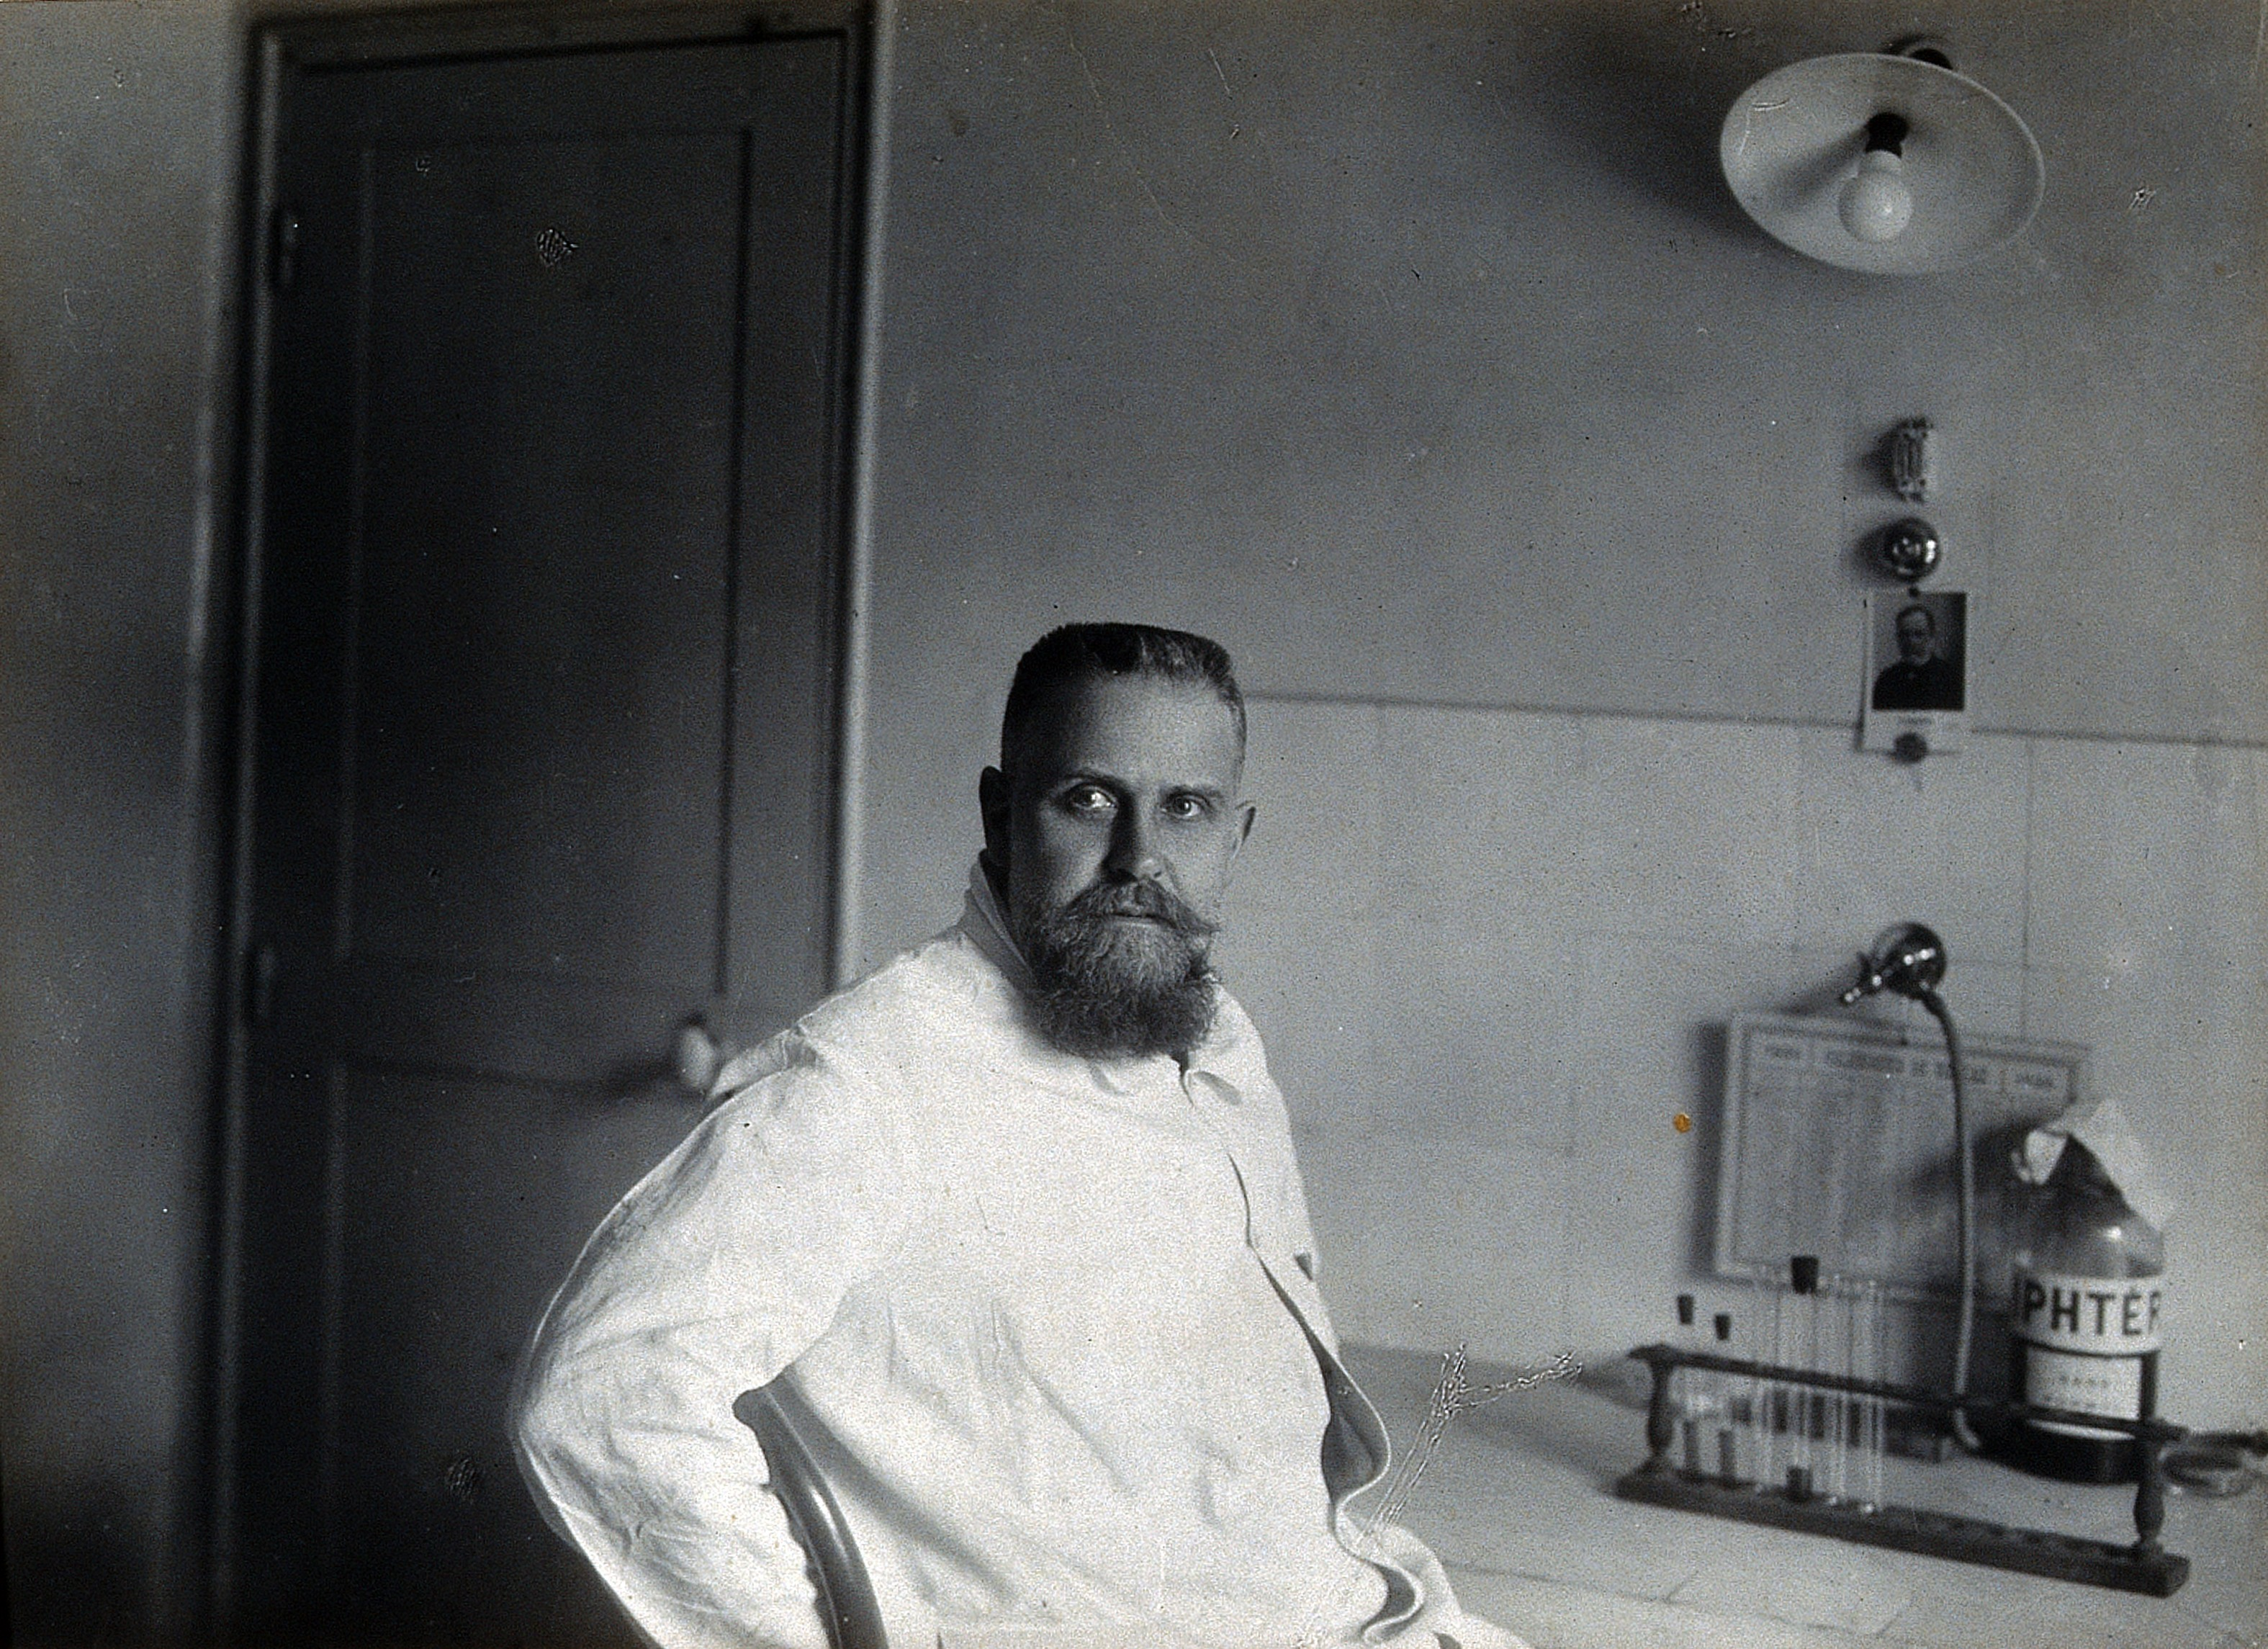 Dr. Gaston Ramon in his laboratory at the Pasteur Institute in Paris, c. 1920s.